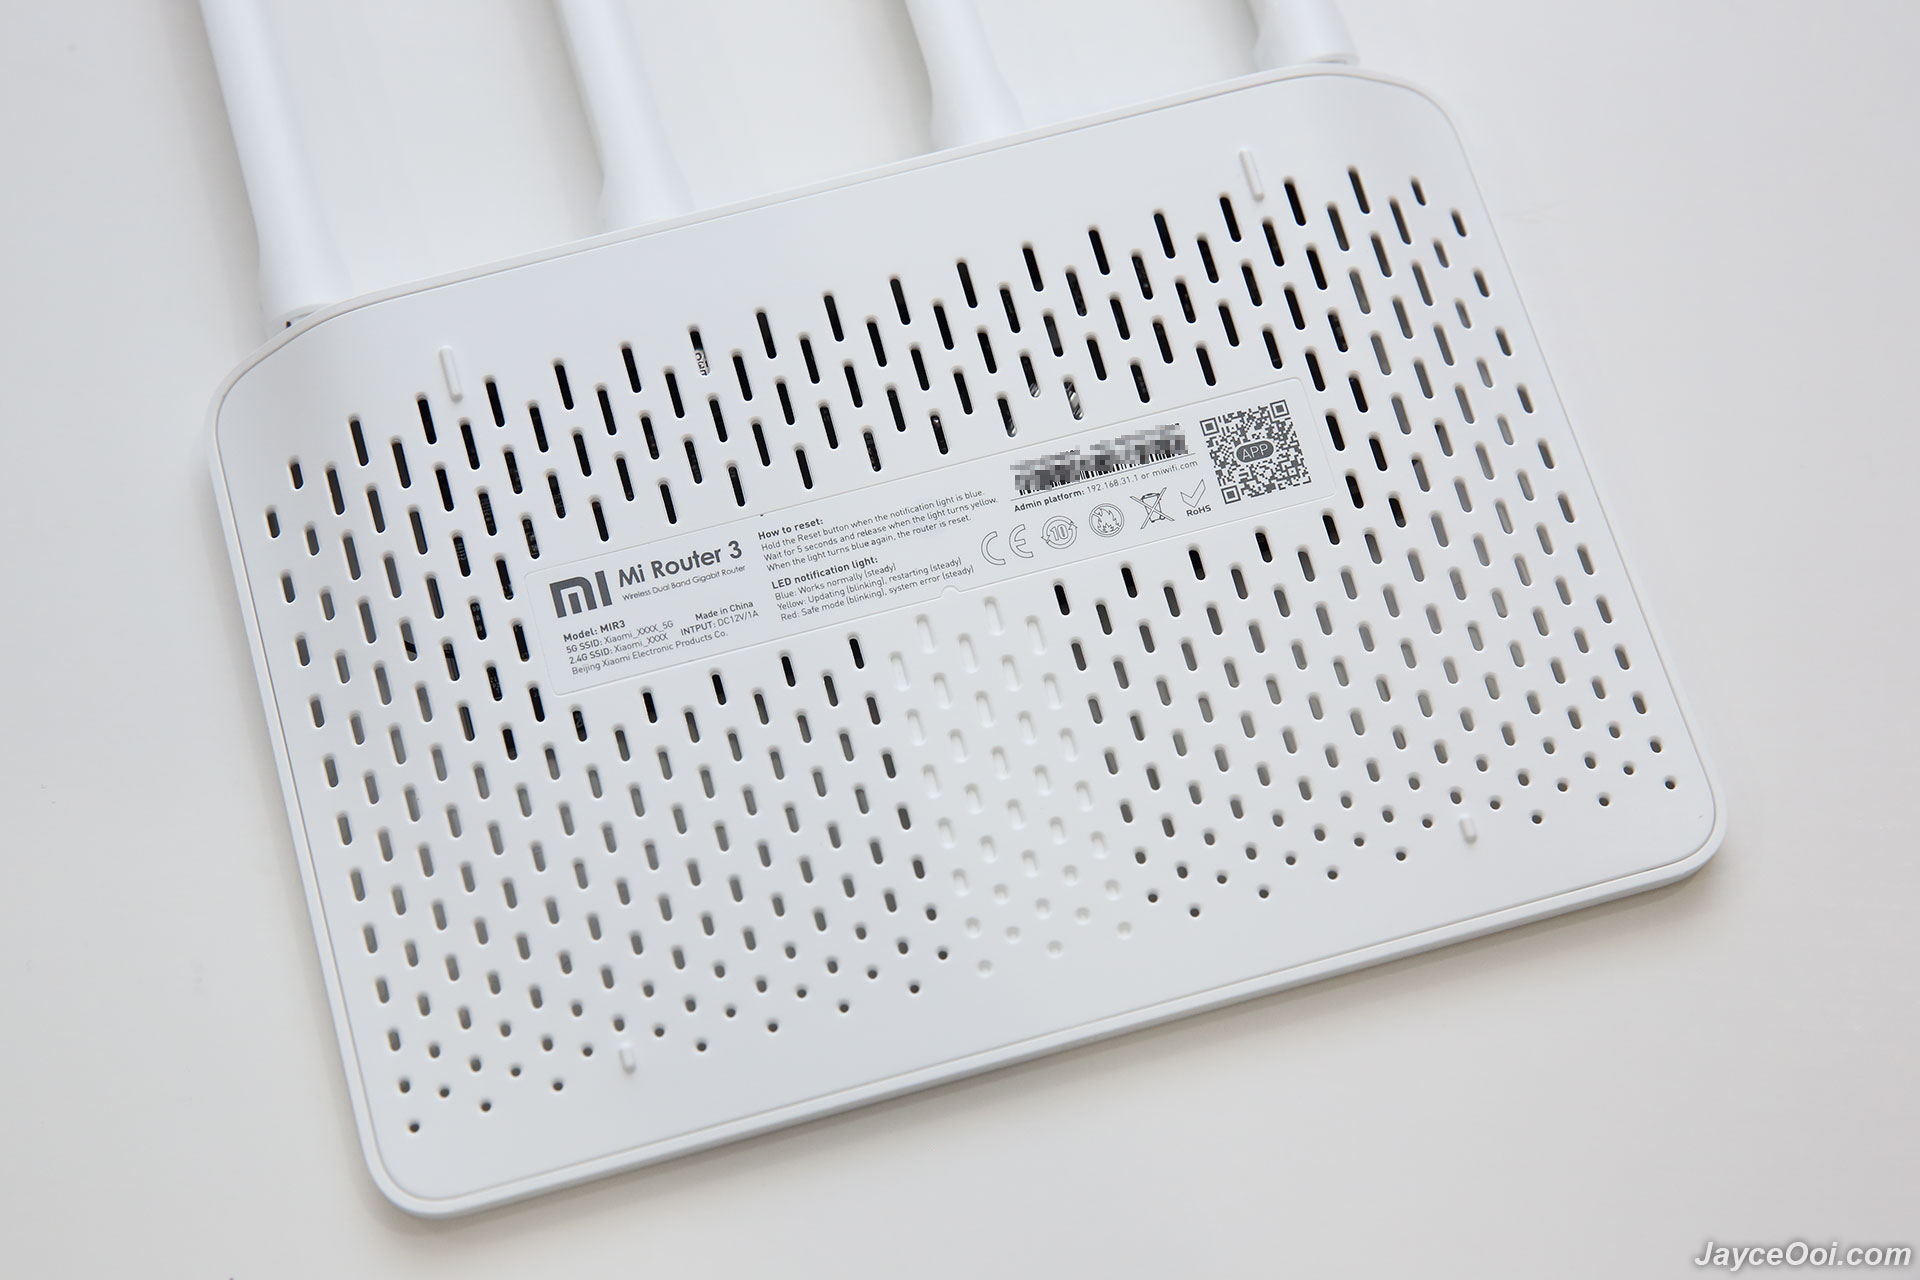 Xiaomi Wifi Router 3 Review